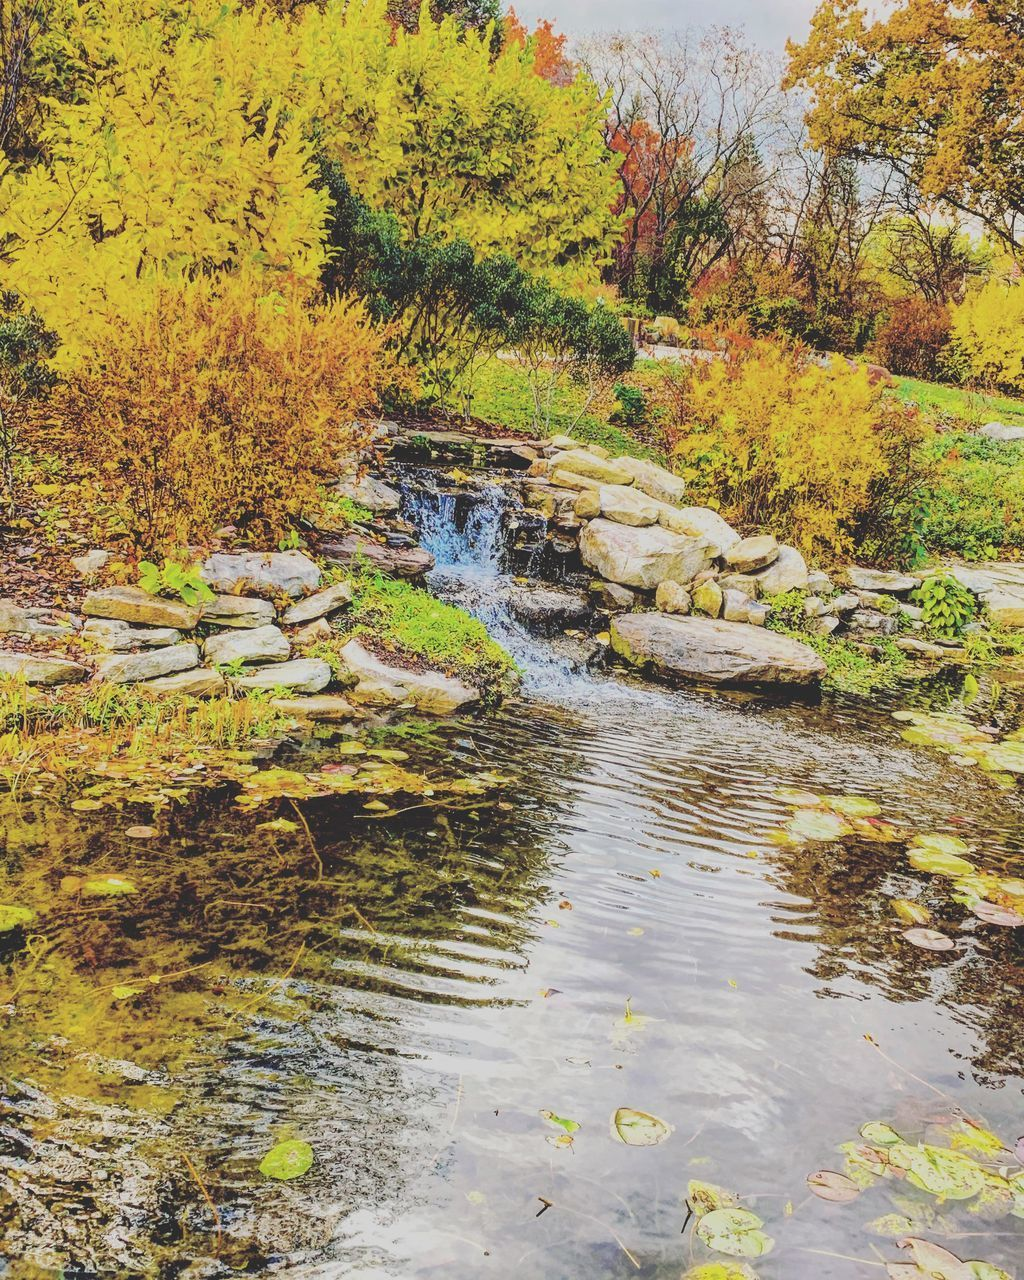 water, tree, plant, forest, autumn, nature, beauty in nature, scenics - nature, tranquility, change, no people, day, flowing water, downloading, land, tranquil scene, growth, motion, lake, outdoors, flowing, stream - flowing water